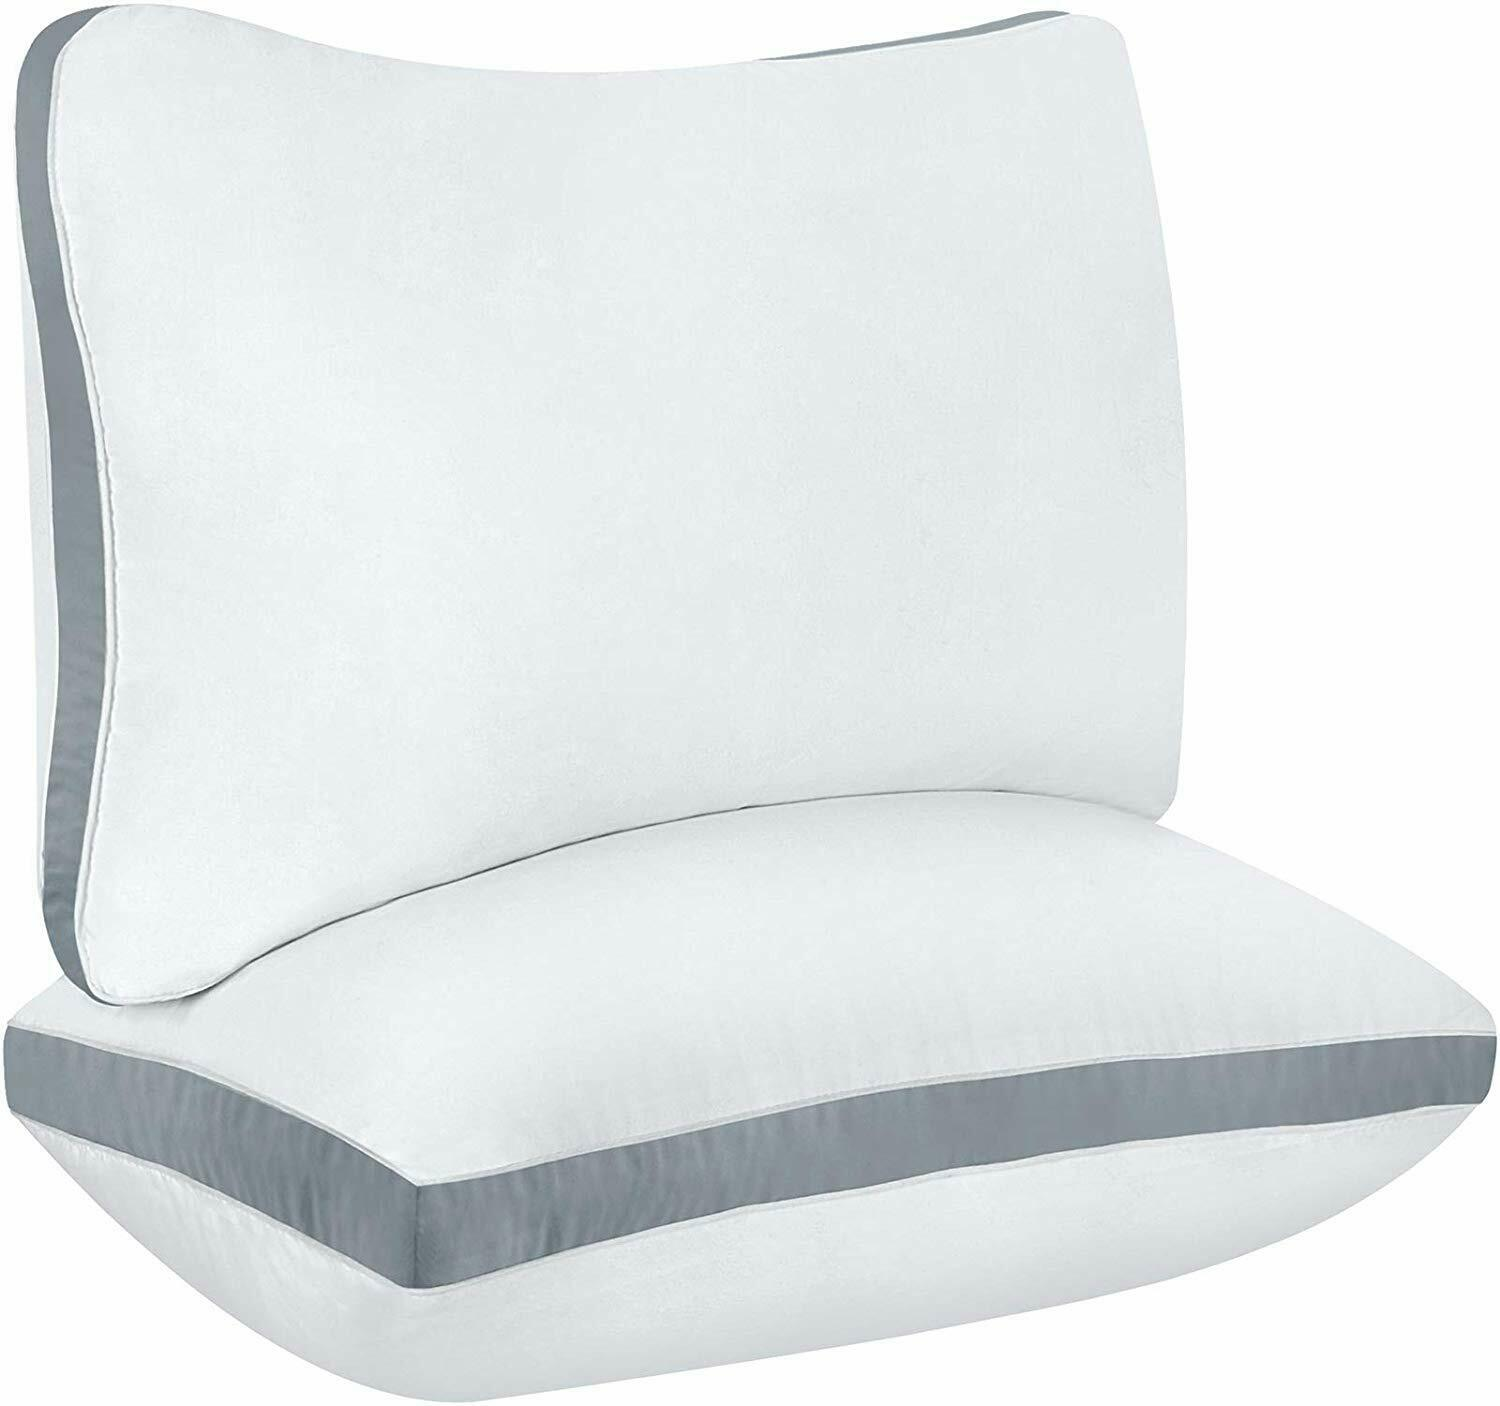 luxury sleeper cotton gusseted pillow available in